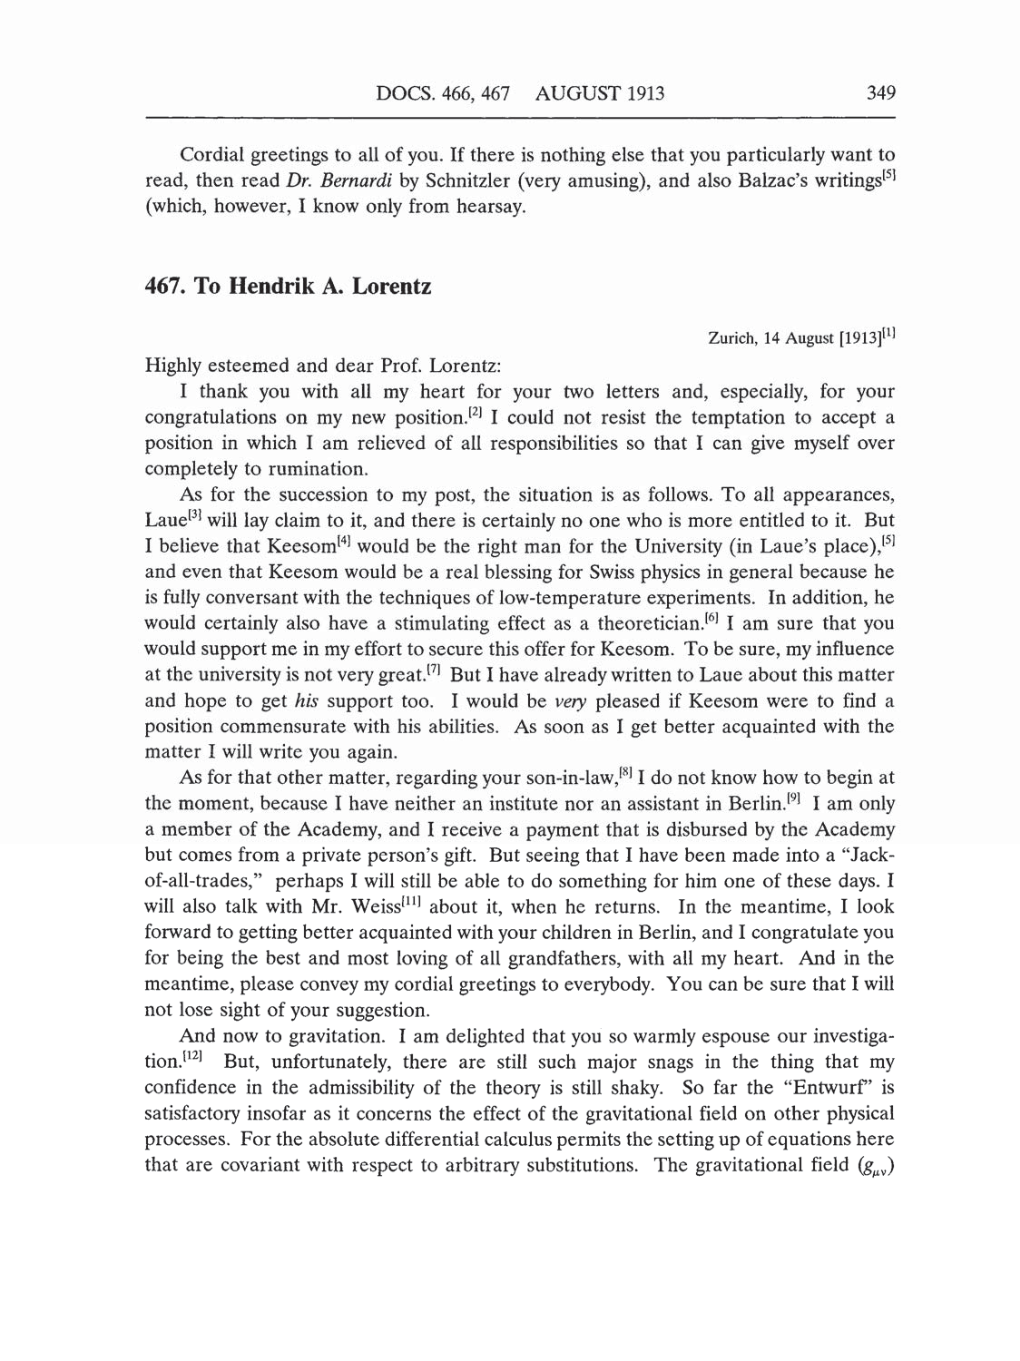 volume 5 the swiss years correspondence 1902 1914 english translation supplement page 349. Black Bedroom Furniture Sets. Home Design Ideas